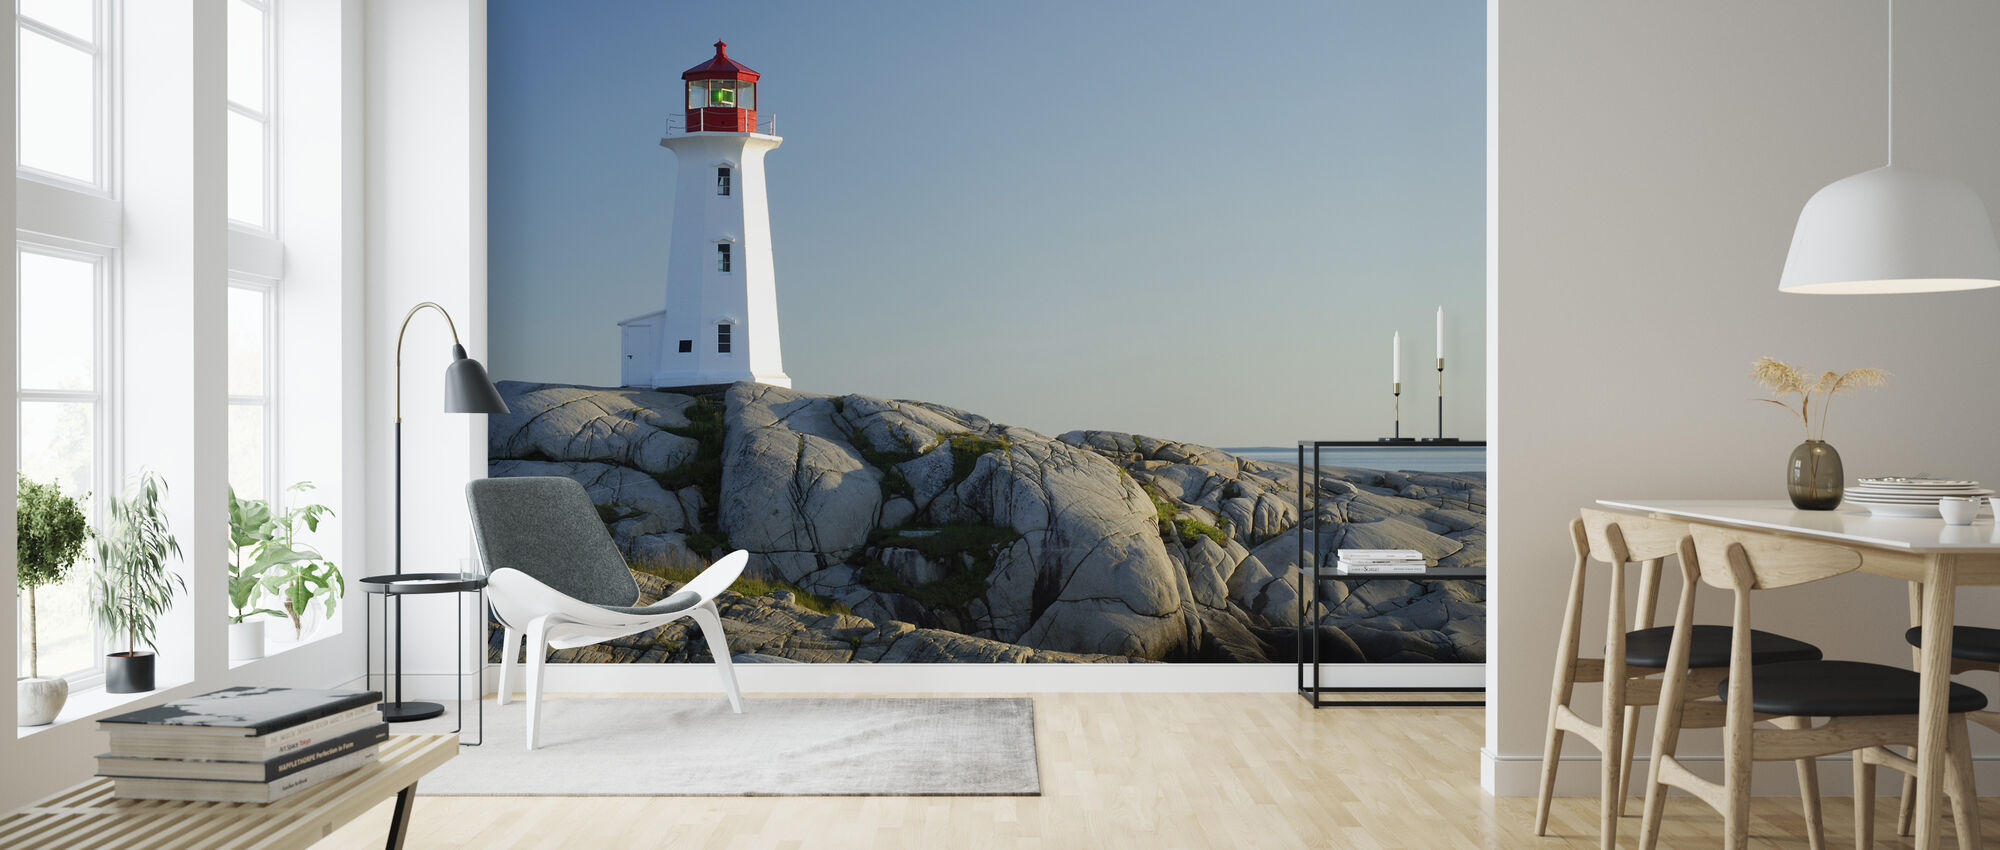 Peggys Cove Lighthouse - Wallpaper - Living Room